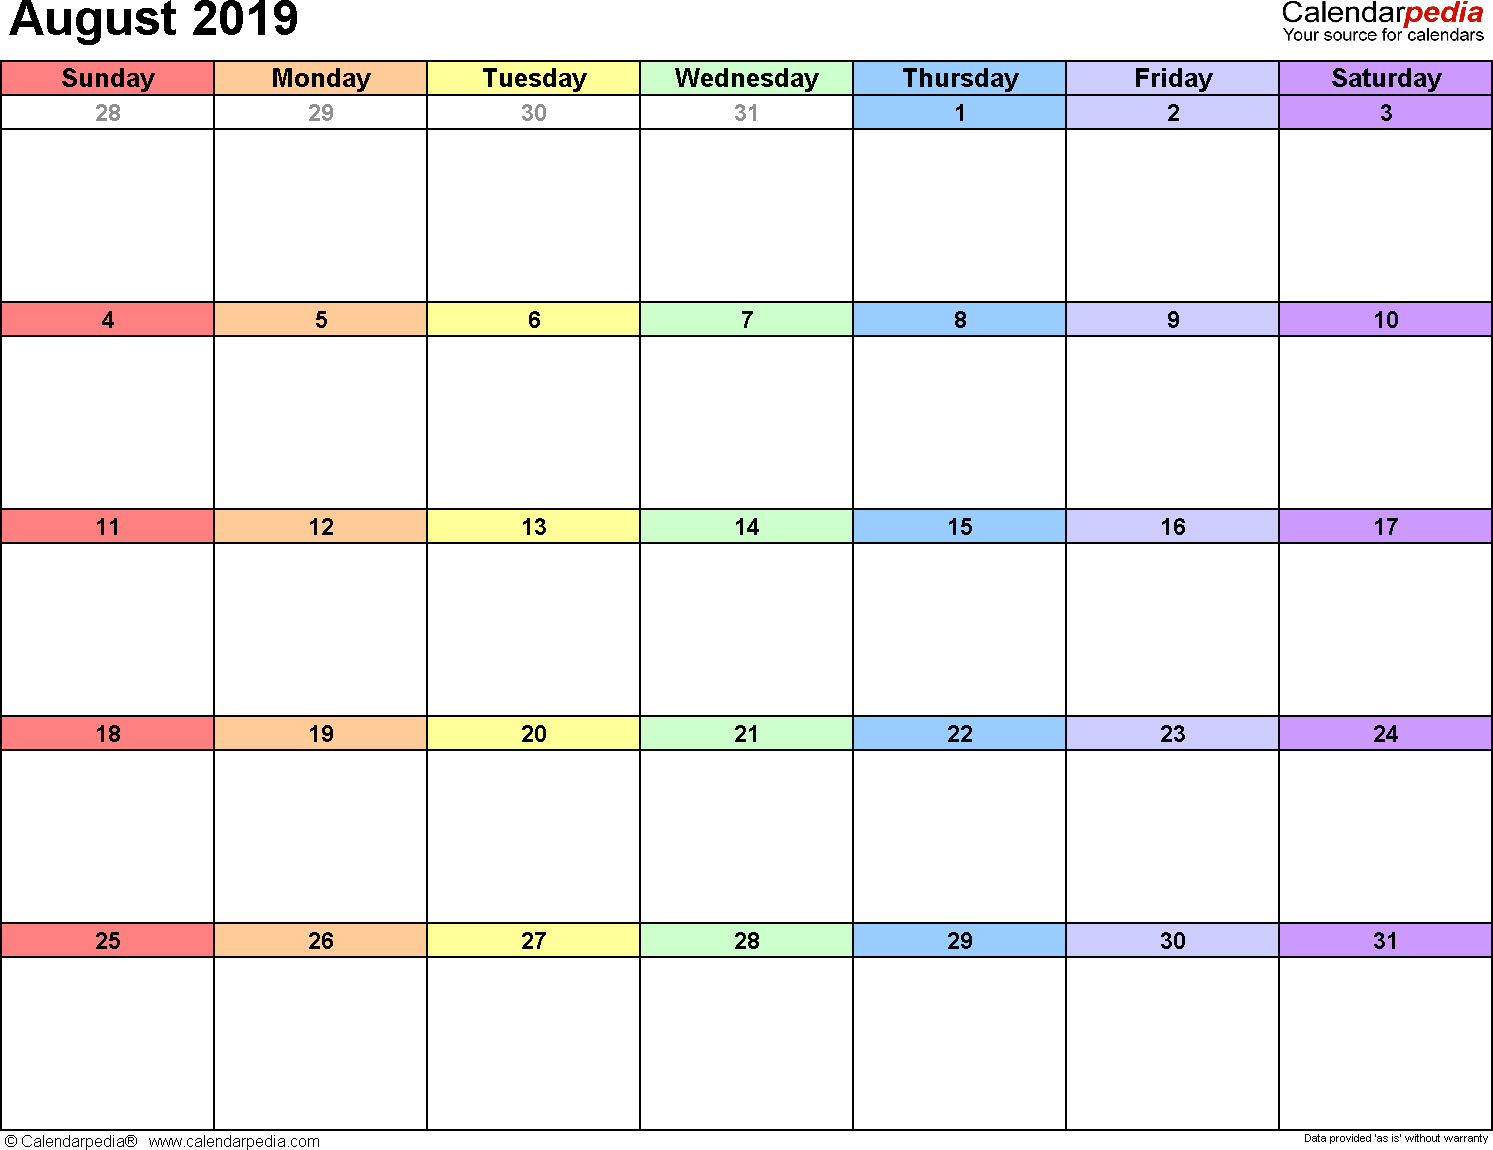 Calendarpedia - Your Source For Calendars with regard to August Printable Calendar Weekly Template